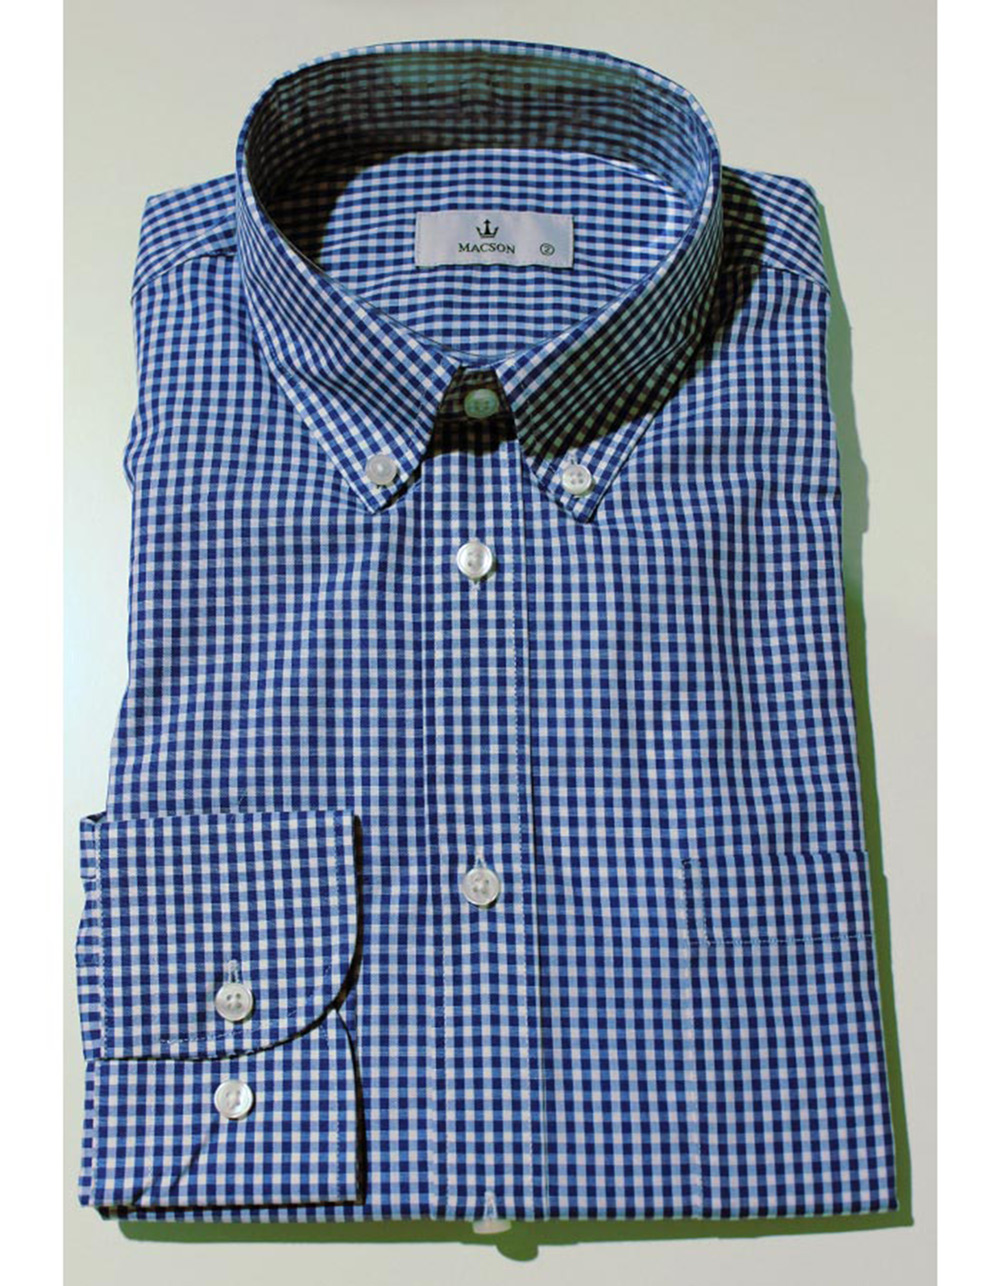 Navy blue checked cotton shirt